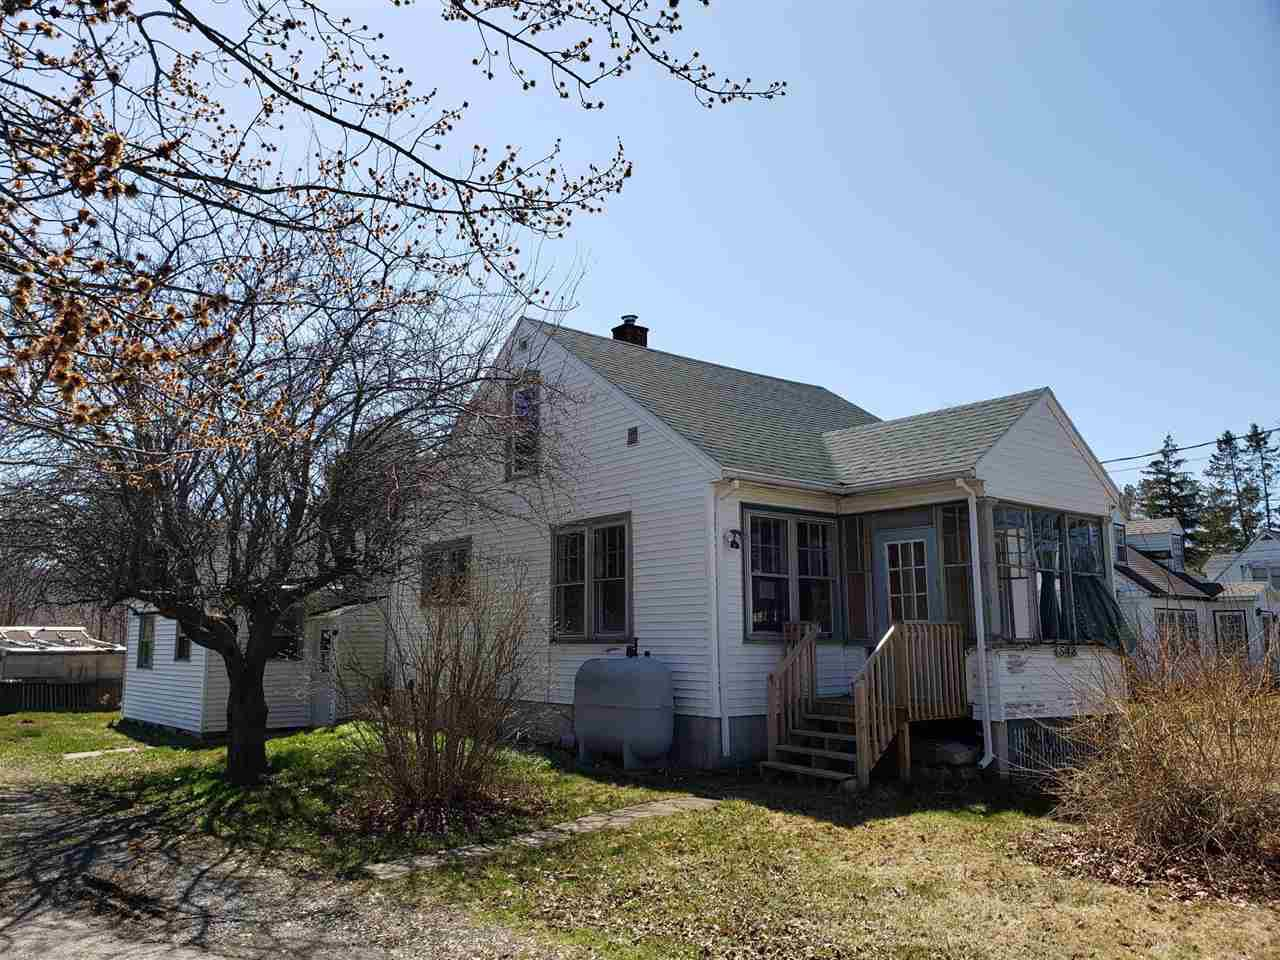 Main Photo: 548 Main Street in Lawrencetown: 404-Kings County Residential for sale (Annapolis Valley)  : MLS®# 202007470